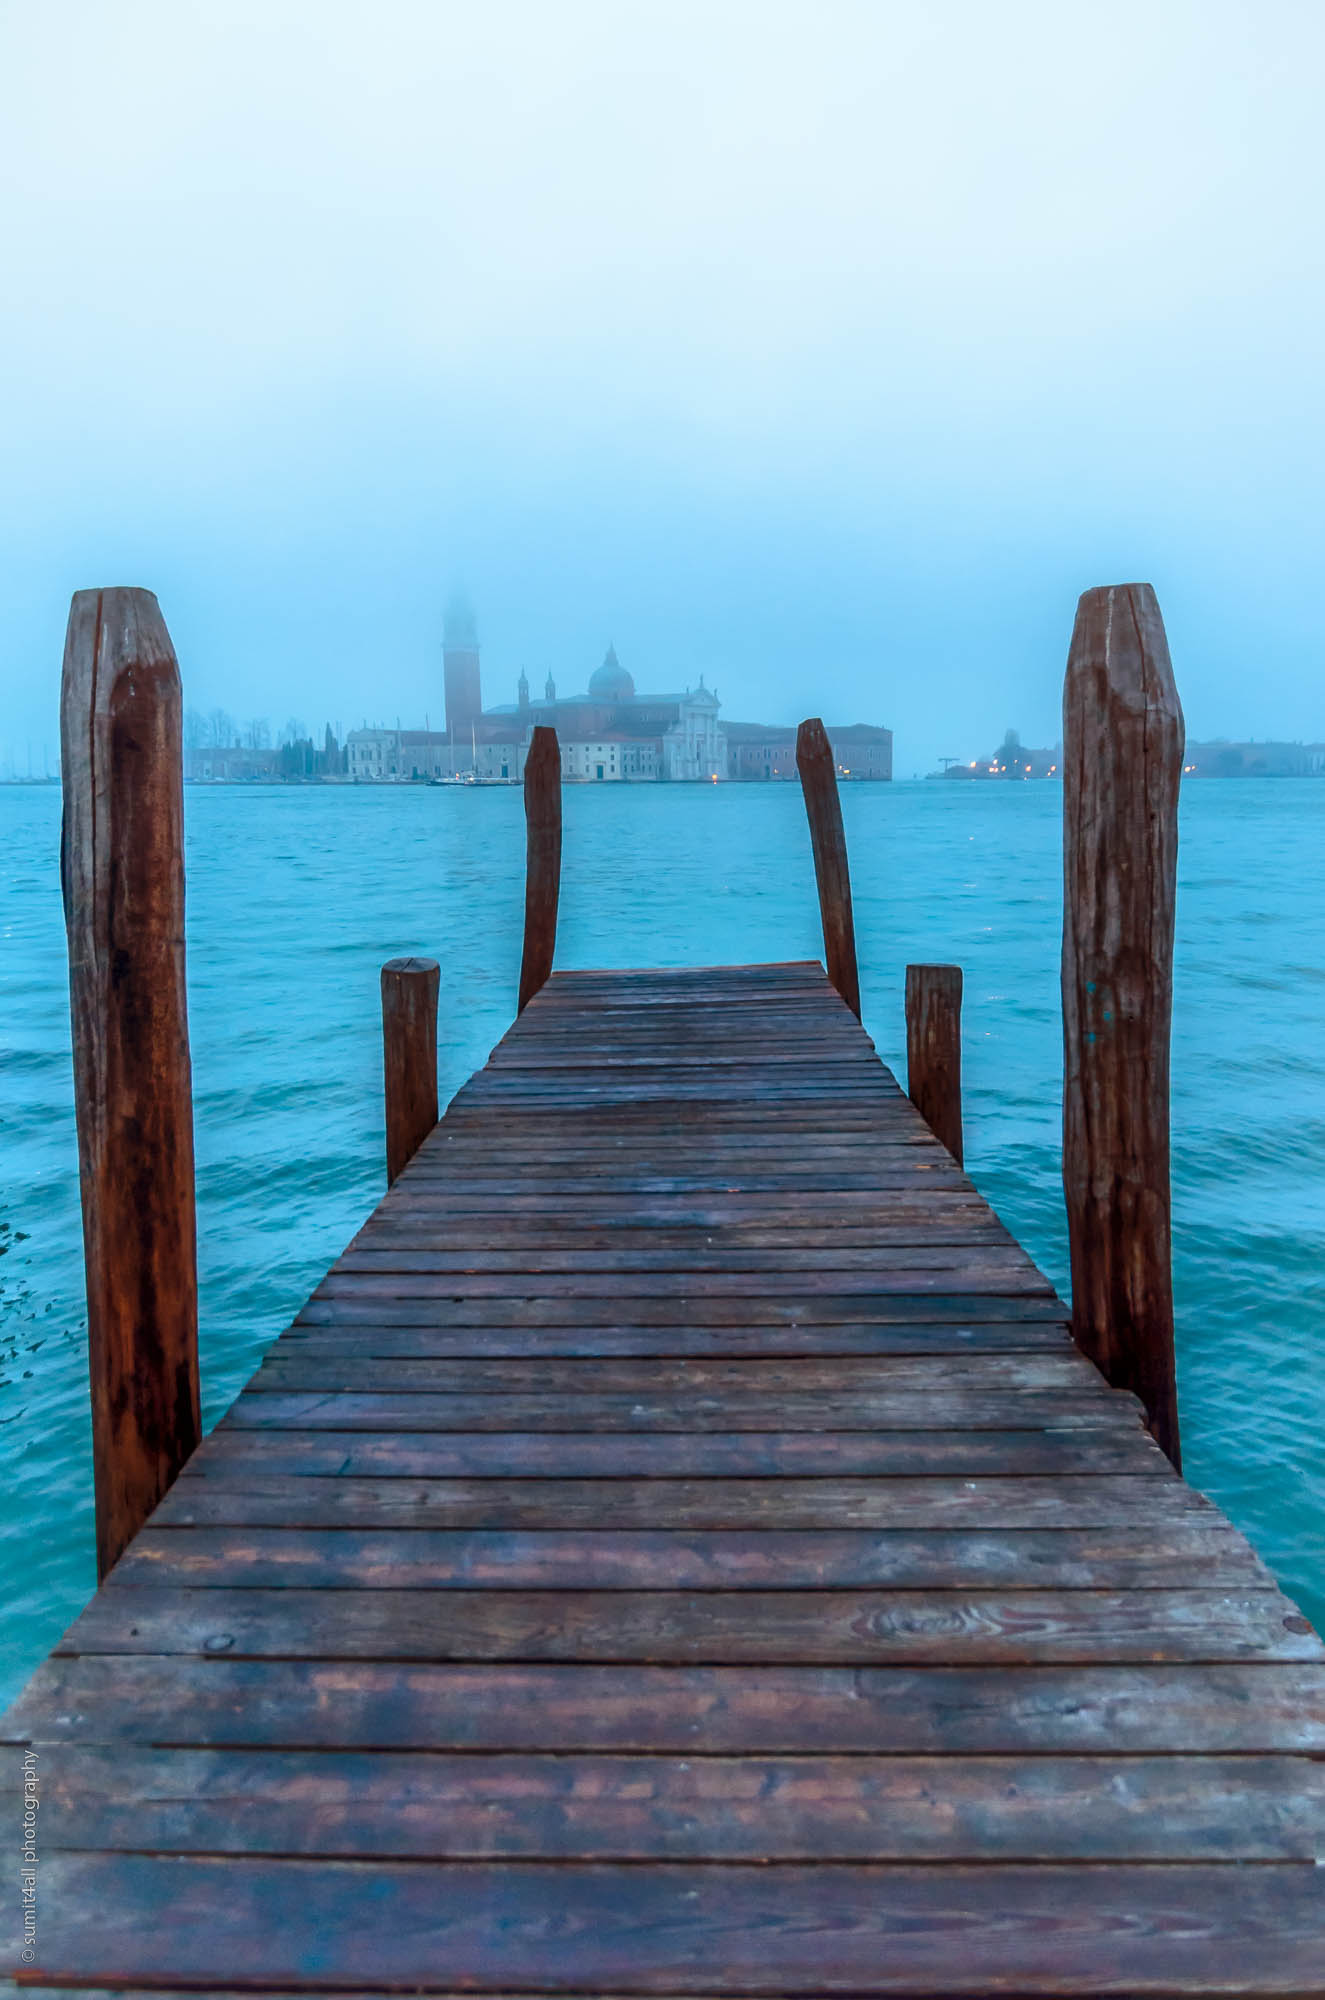 Foggy Morning in Venice, Italy